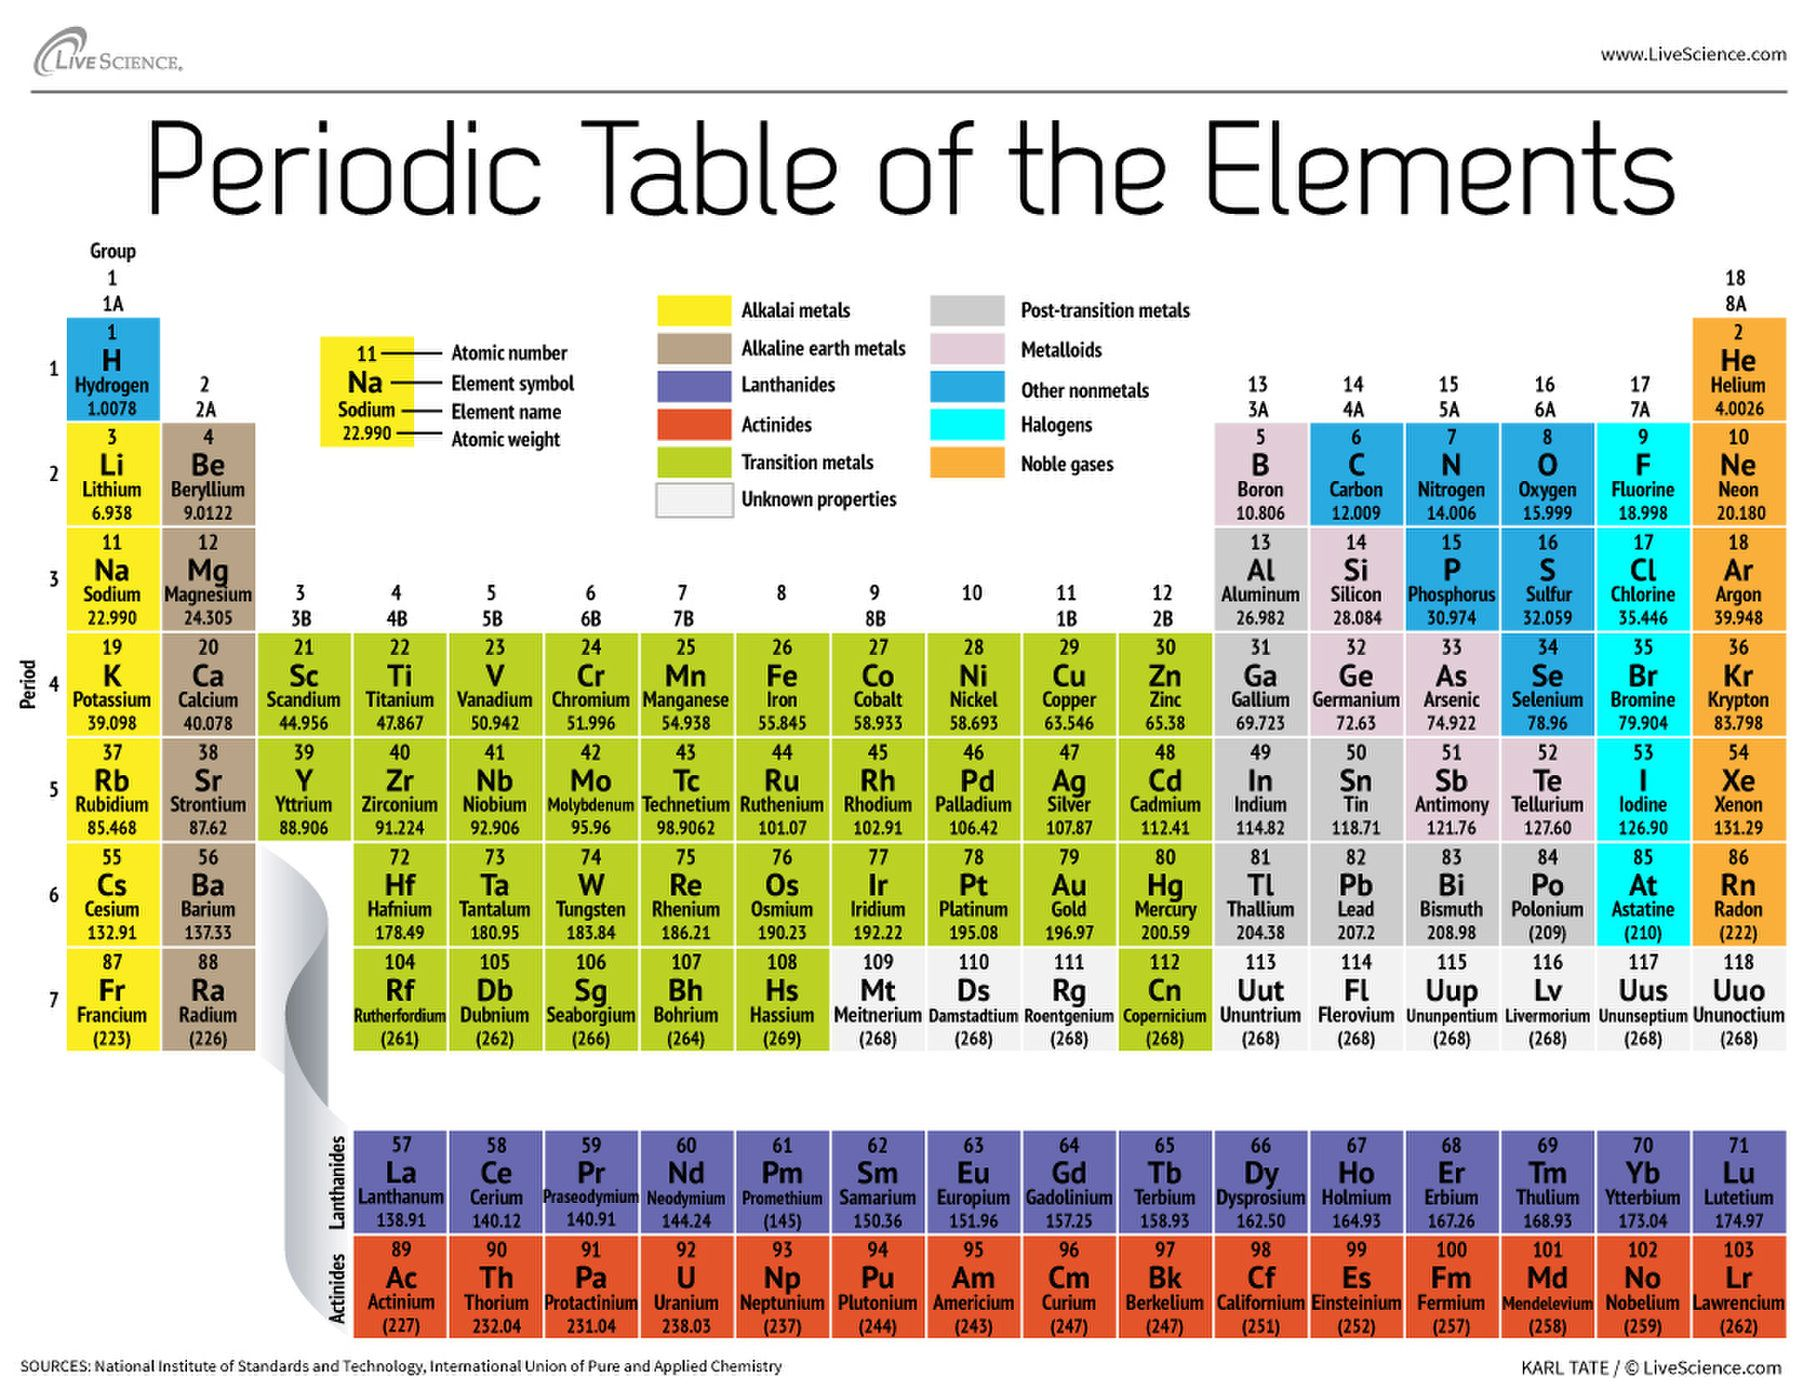 Periodic table of elements periodic table periodic table biocorpaavc Choice Image